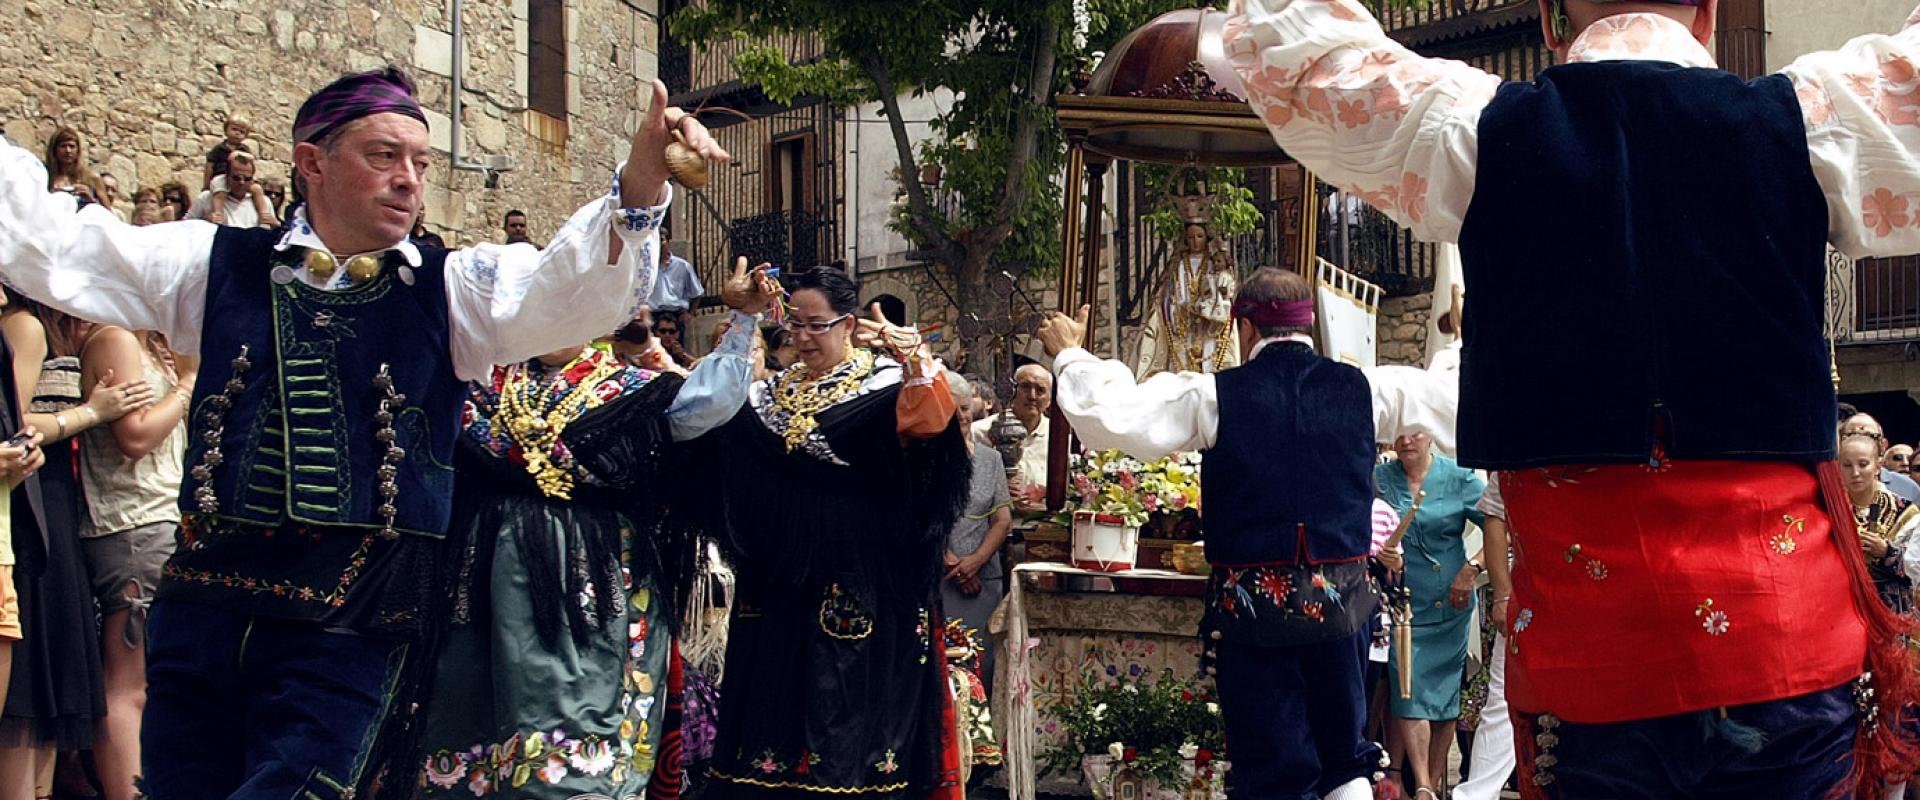 Offertories and romeria pilgrimages